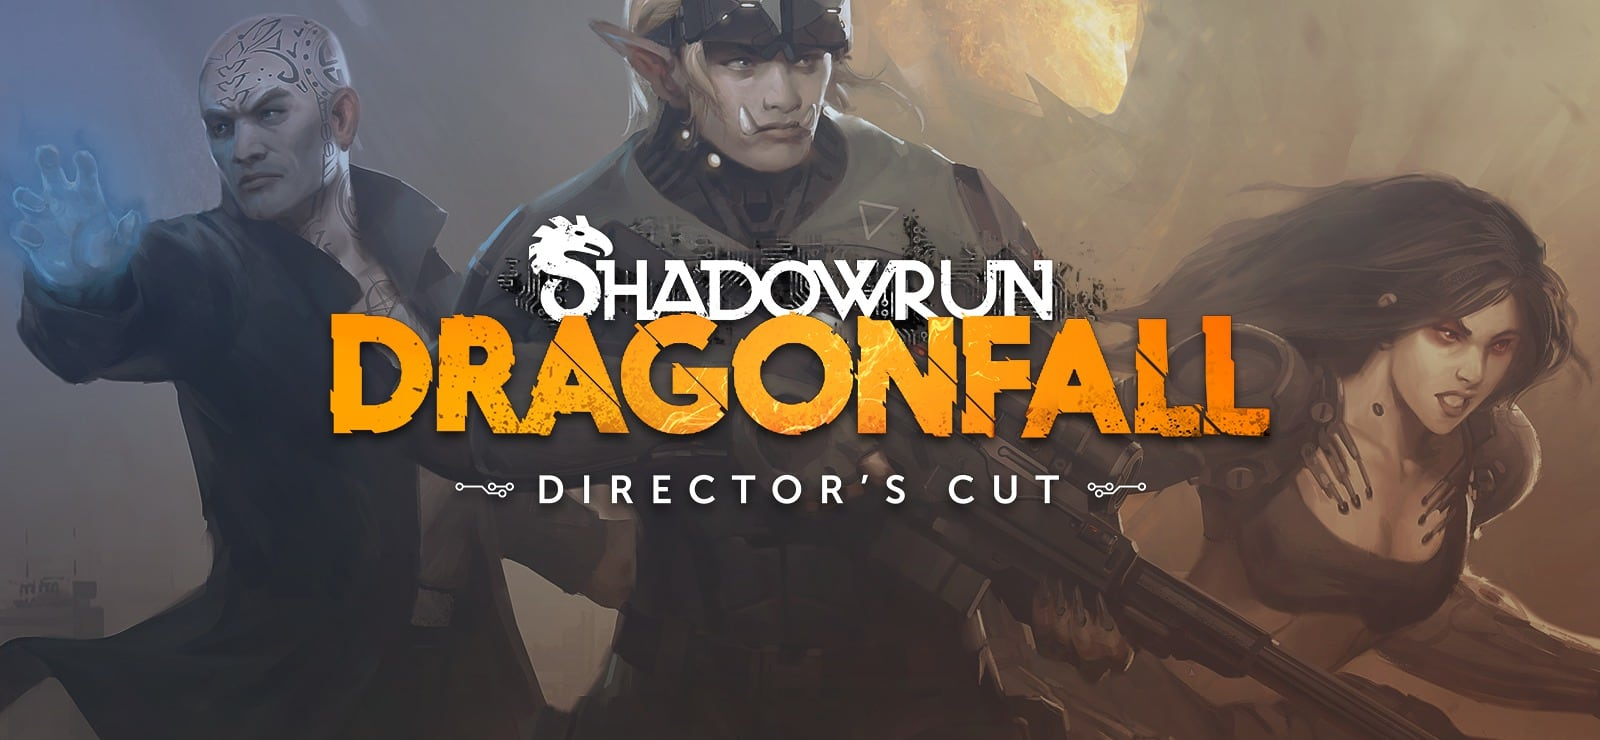 Shadowrun: Dragonfall - Director'S Cut varies-with-device